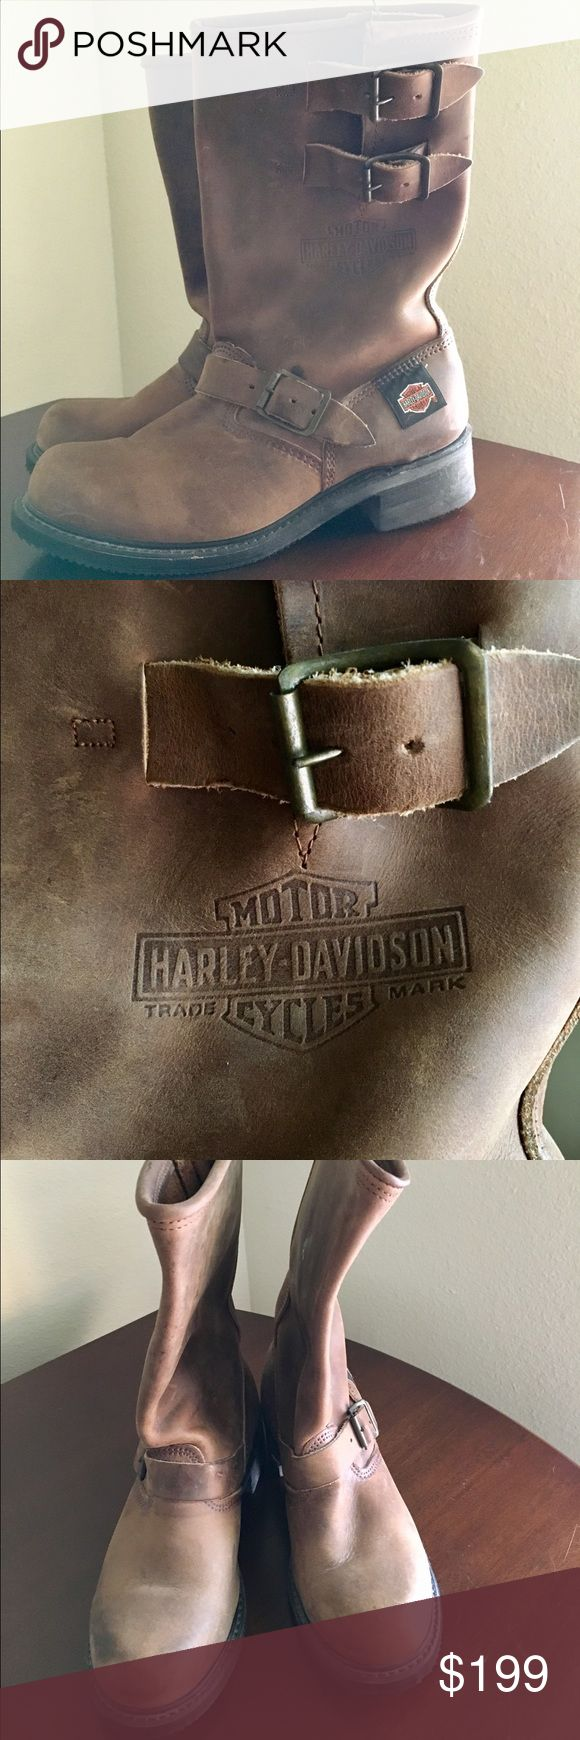 Harley -Davidson Motorcycle Riding Boots Harley -Davidson Motorcycle Riding Boots- Engineer Boots with Double Buckles.  Worn twice. They are men boots and is a size 7. I am a woman and wear a size 9/ 9.5 depending on the brand/ designer. They look unisex to me. I've seen many women wear them and look great in them. I prefer to wear my black Harley Davidson wedges boots- I prefer a more feminine look. They're in EXCELLENT condition with their original sole. Priced to sell. SERIOUS Inquiries…